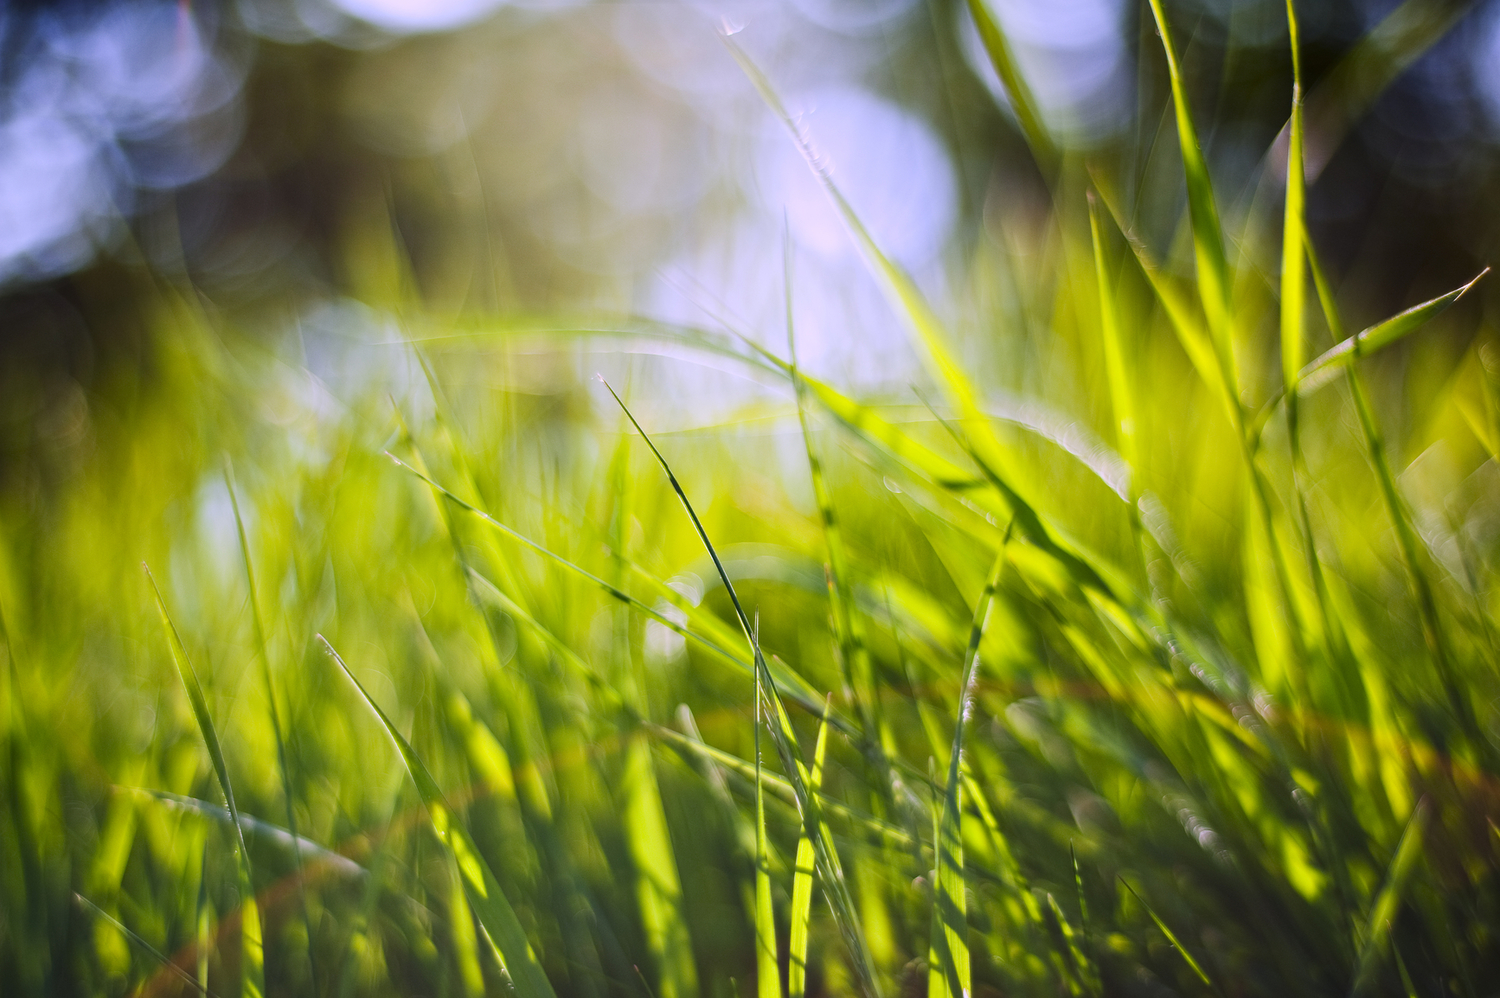 Background of lush green grass blades with defocussed bokeh lights background